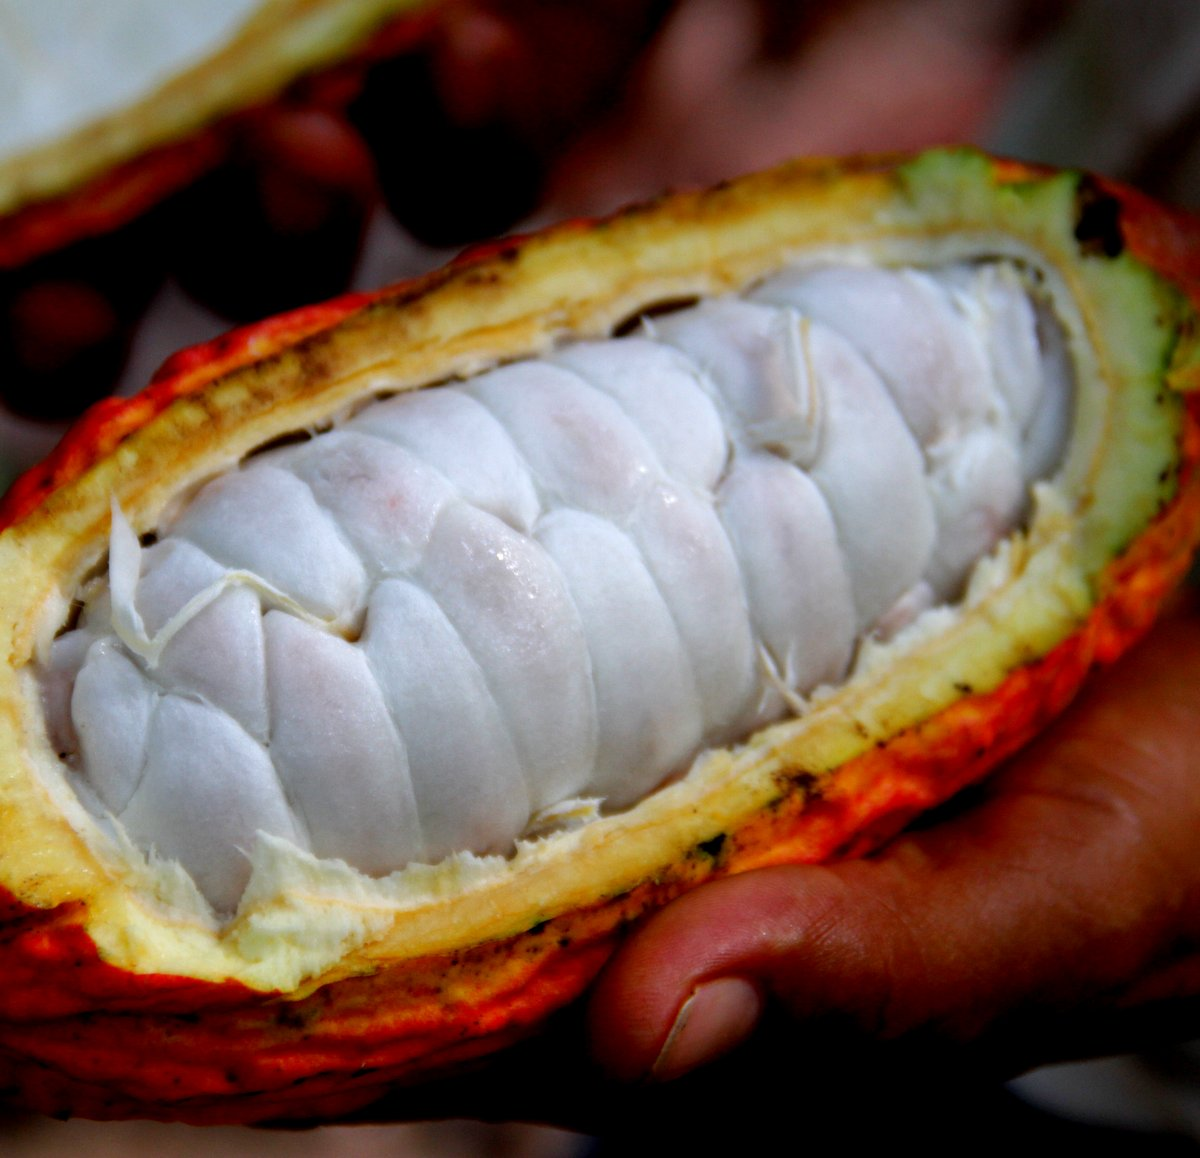 The wonders within the cacao fruit pod - it's not just about the cocoa beans anymore! See how The Cacao Fruit Company uses more than 95% of the entire cacao fruit, not just the 20% that is the current industry average.